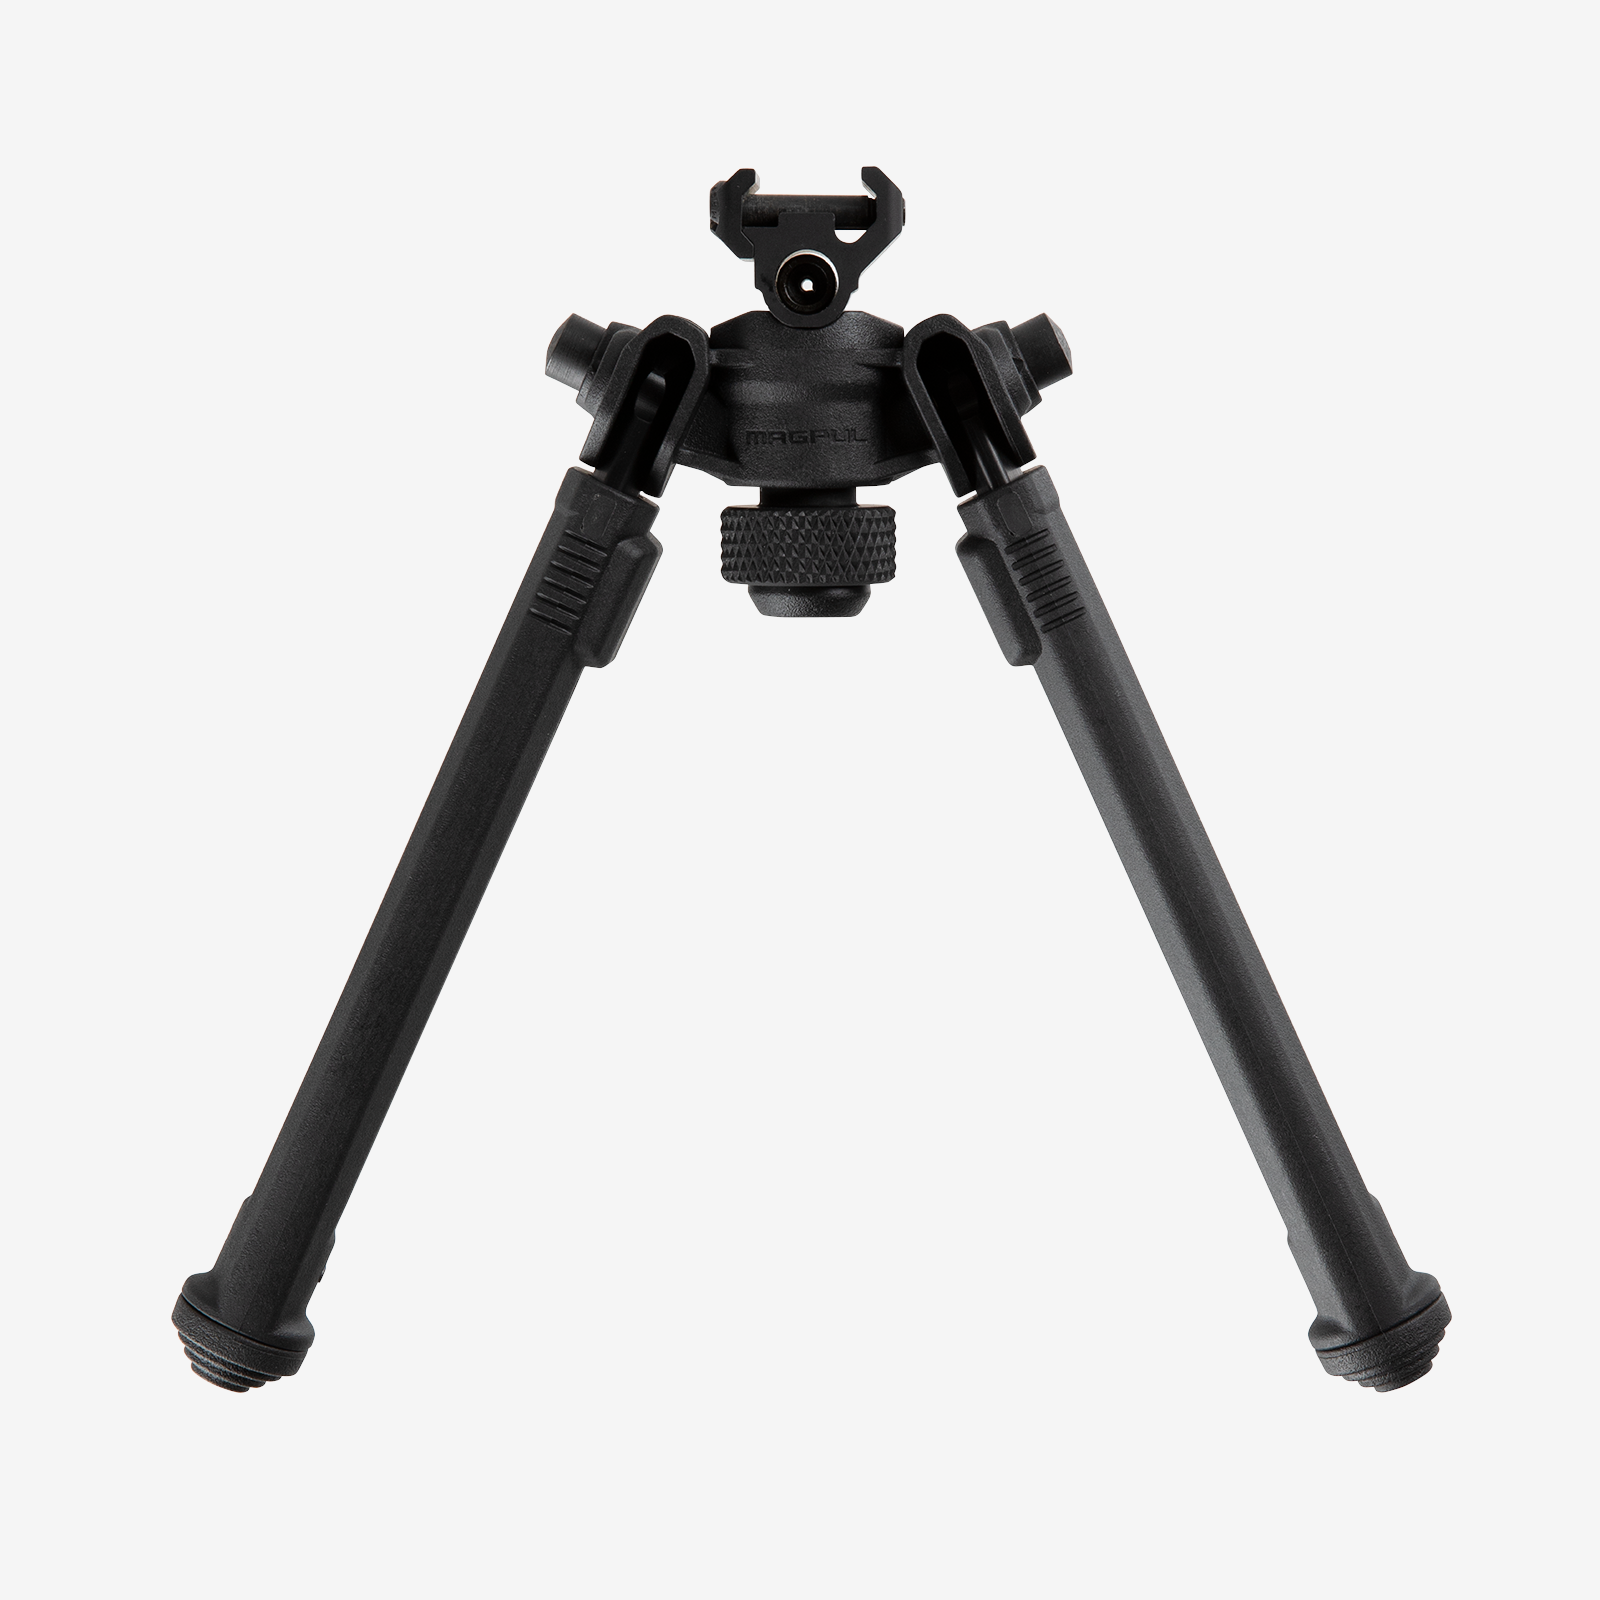 Magpul Pan, Tilt and Height Adjustable Bipod with 1913 Picatinny Rail Mount MAG941 - Australian Tactical Precision